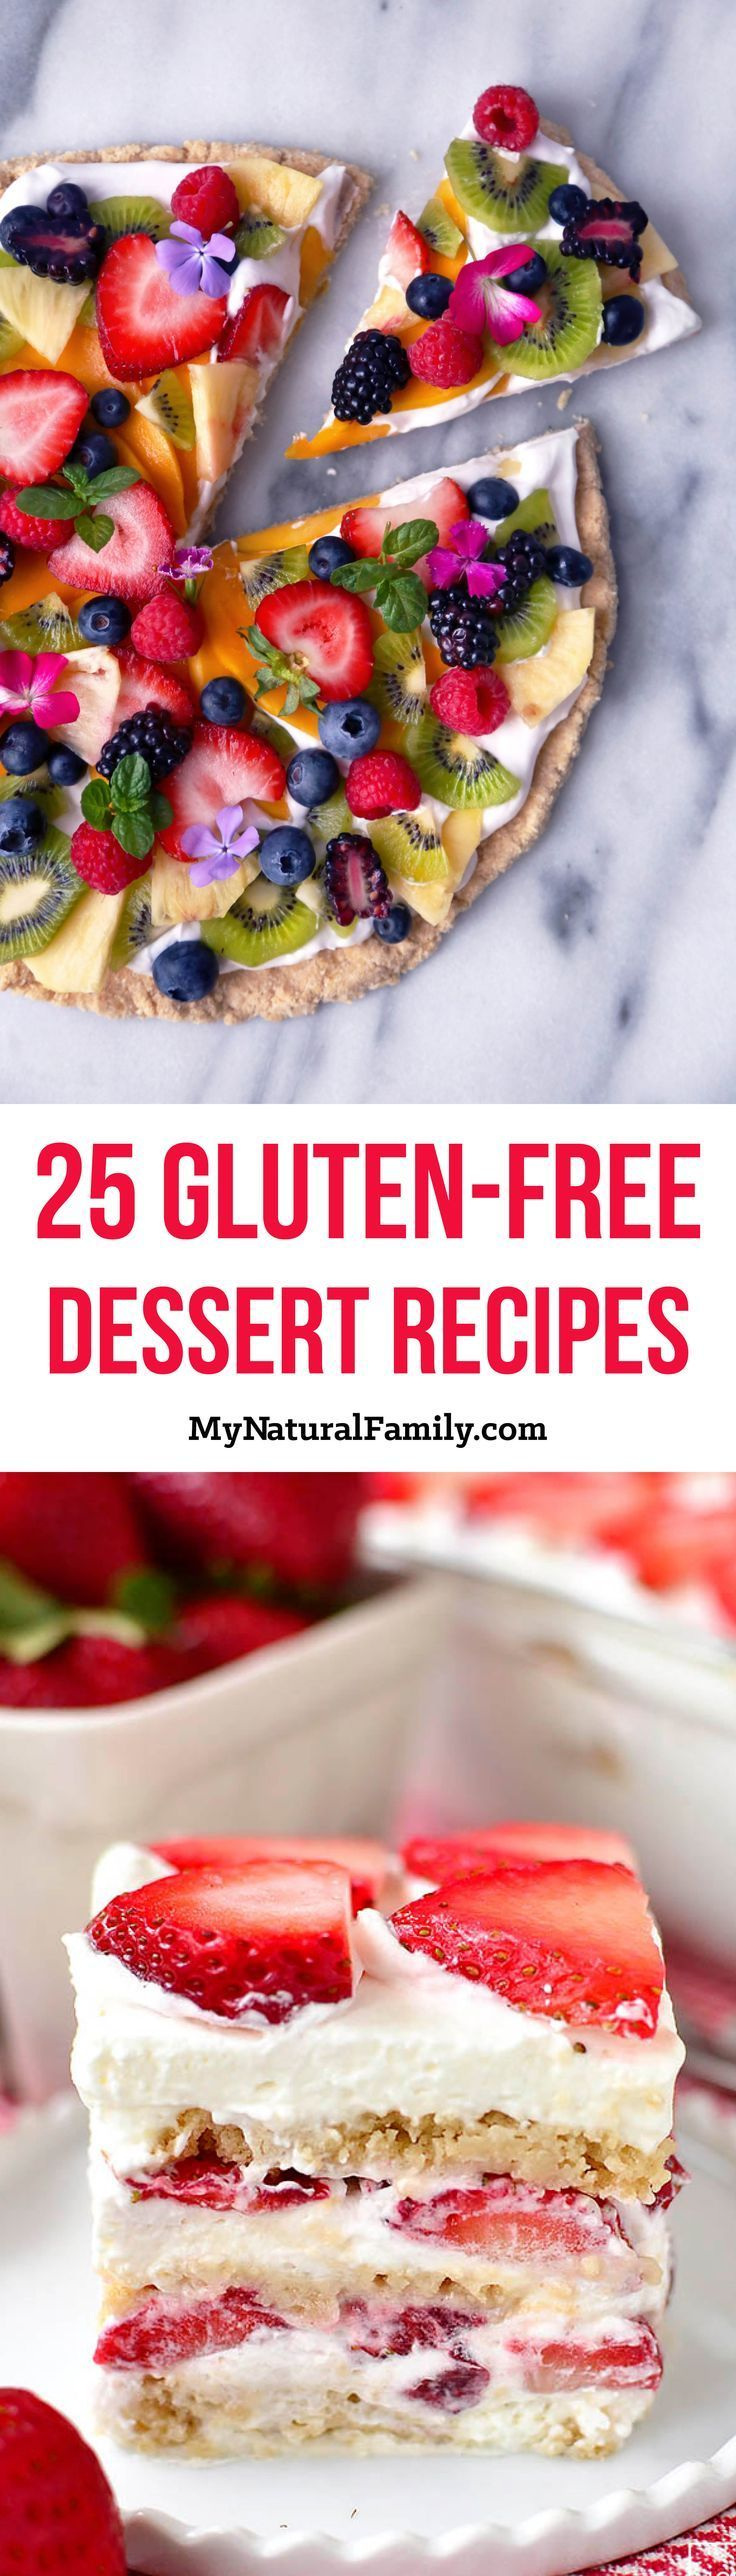 The 25 Best Gluten Free Dessert Recipes Part 3